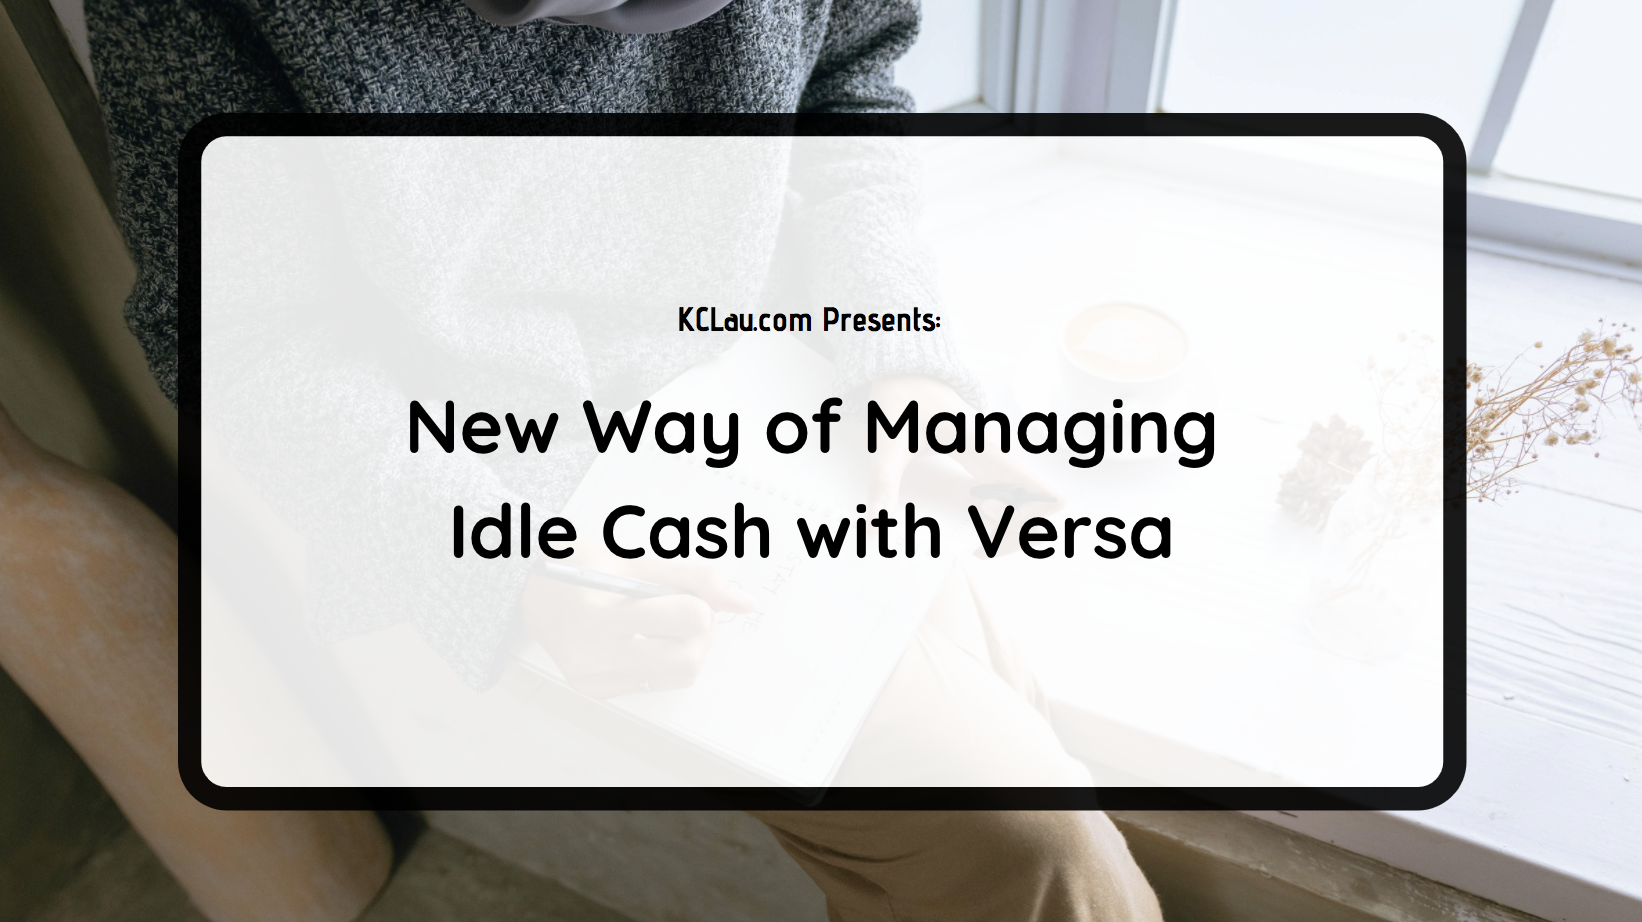 New Way of Managing Idle Cash with Versa